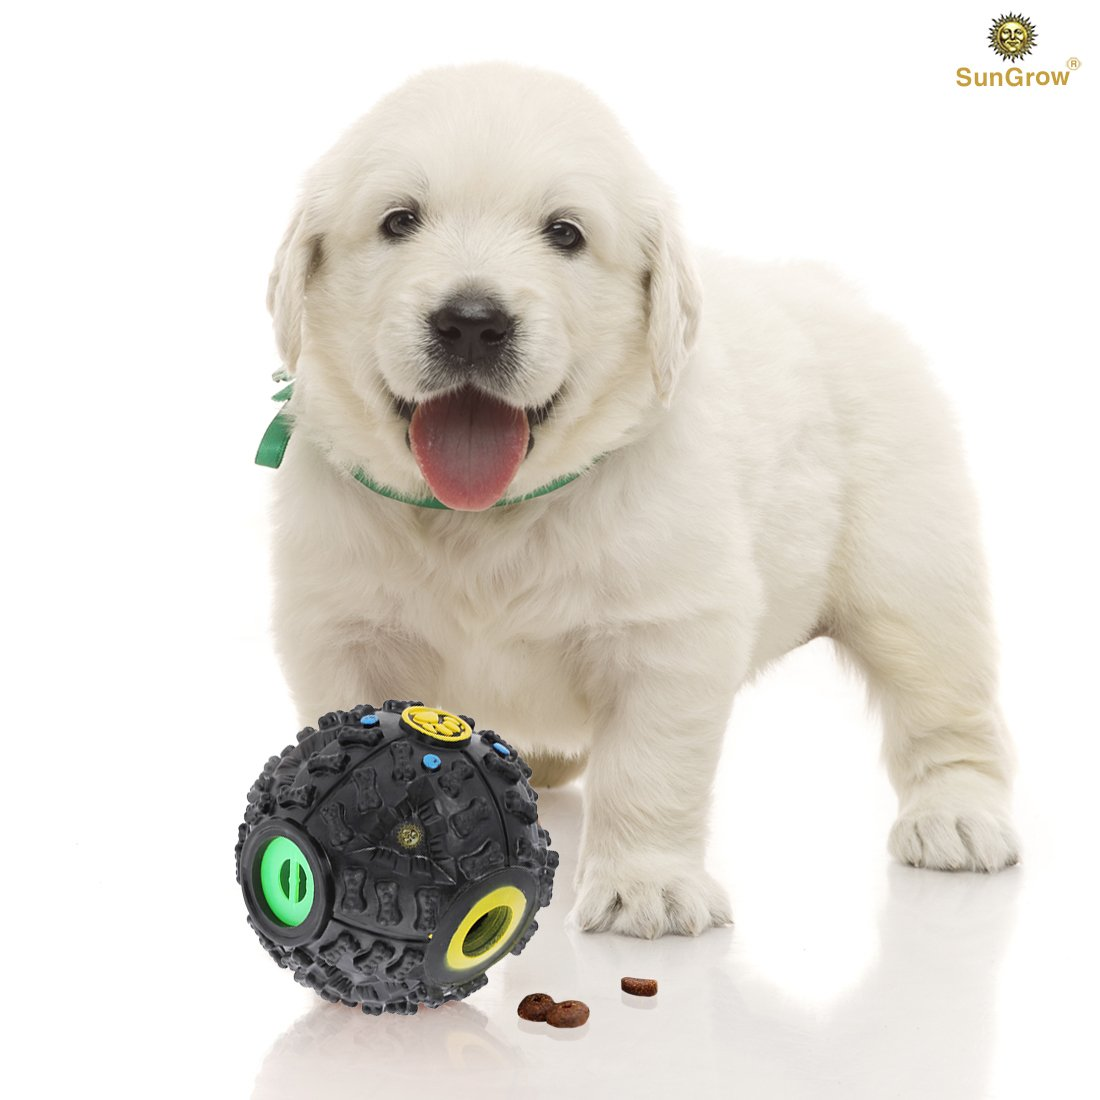 SunGrow Interactive Treat Dispenser Dog Toy – Food Puzzle Ball – for Mental & Physical Stimulation – Increases IQ, Boredom Buster – Produce Sound on Rolling – for Cats, Puppies, Small & Medium Pets